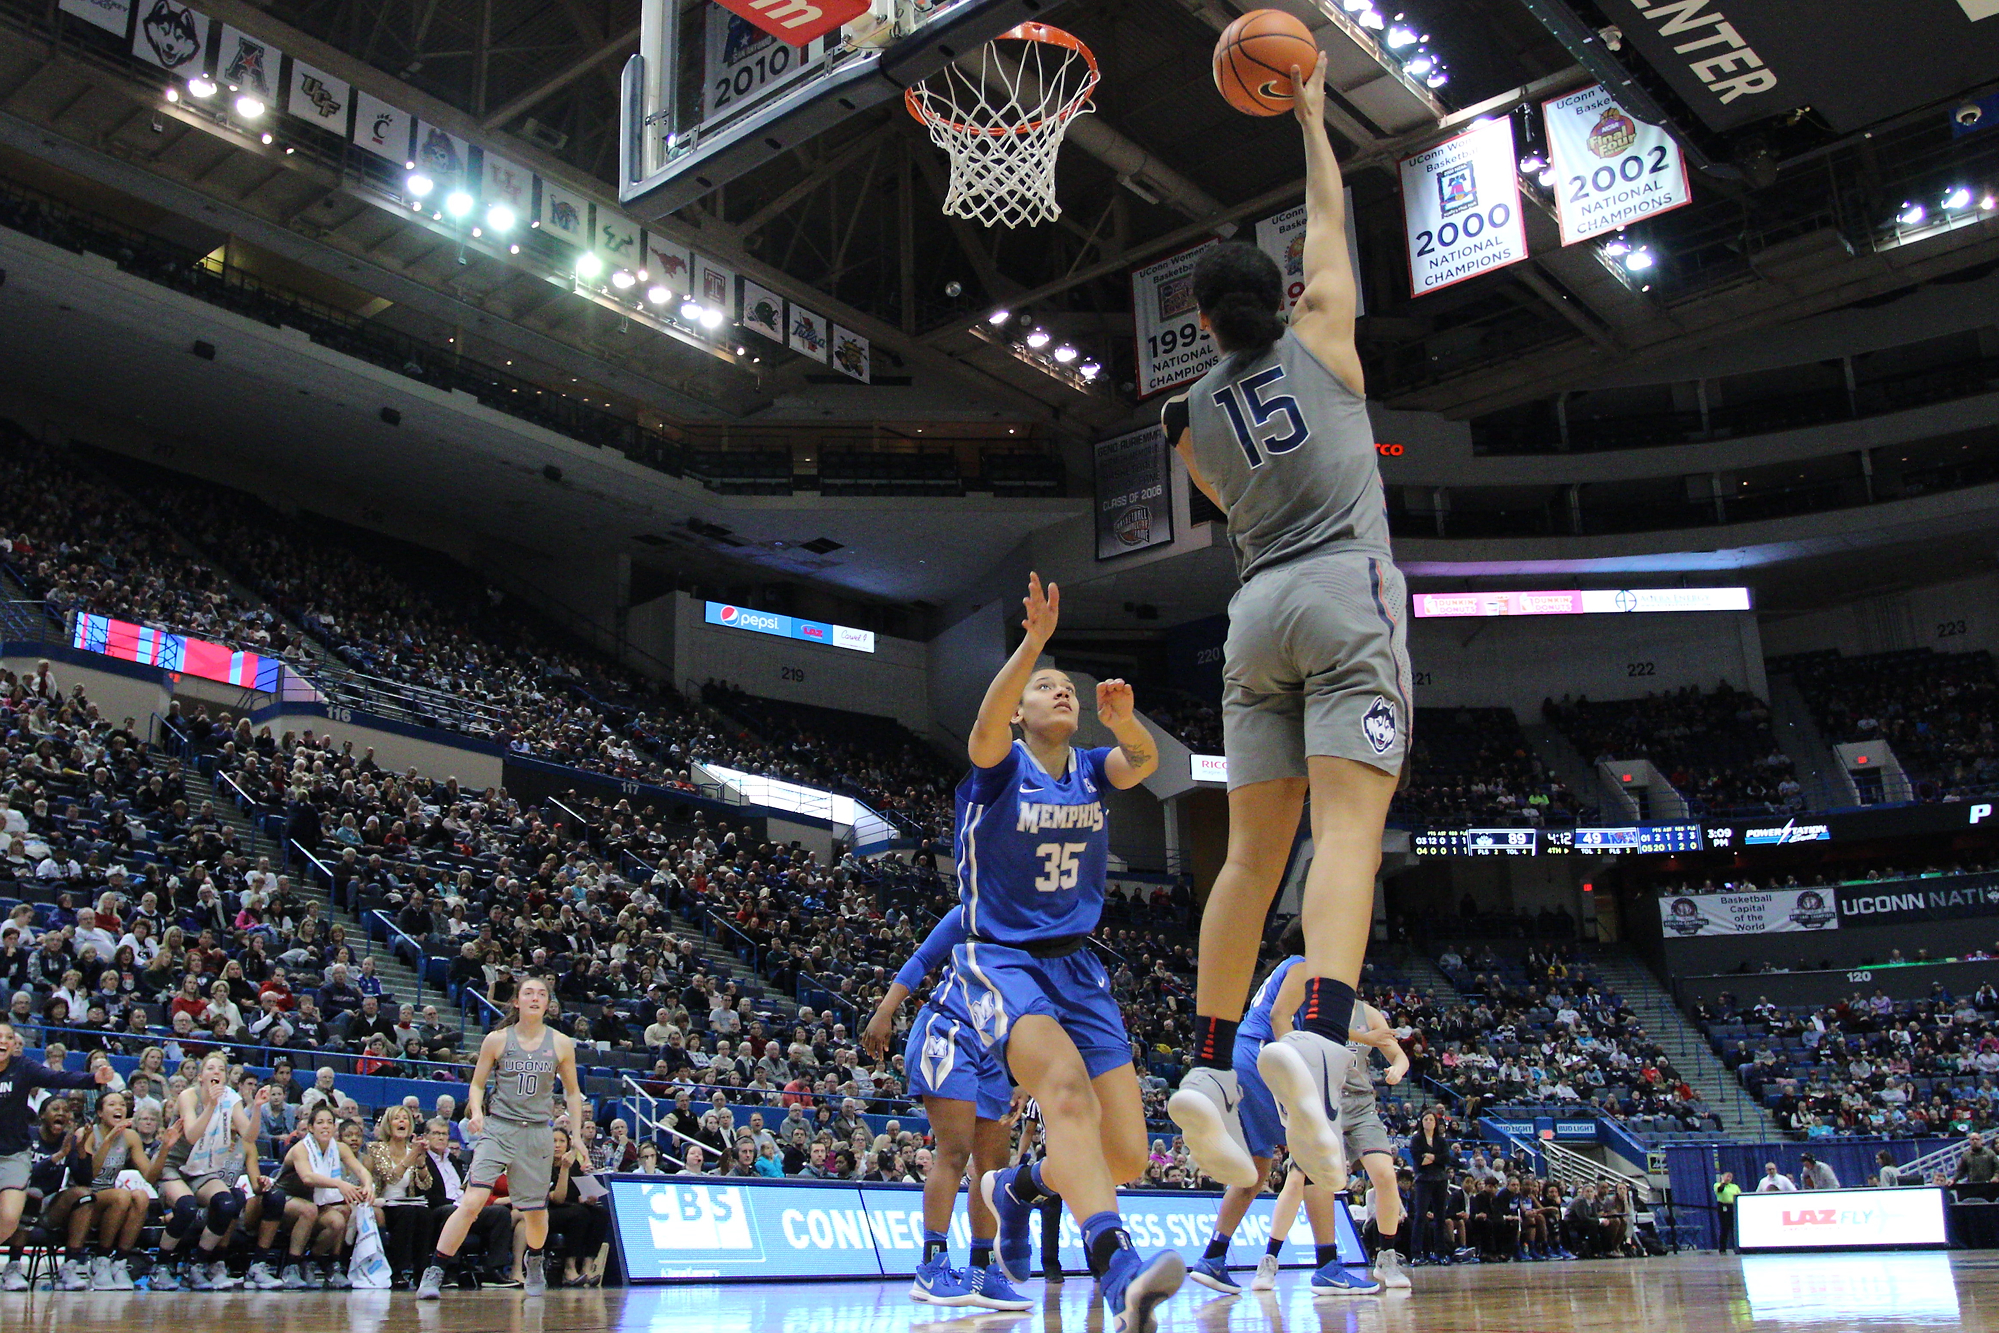 UConn forward Gabby Williams goes up for a layup in the Huskies' 97-49 win over the Memphis Tigers on Sunday, Dec. 31, 2017 at the XL Center in Hartford, Connecticut. (Photo courtesy of Ian Bethune/TheUConnBlog)